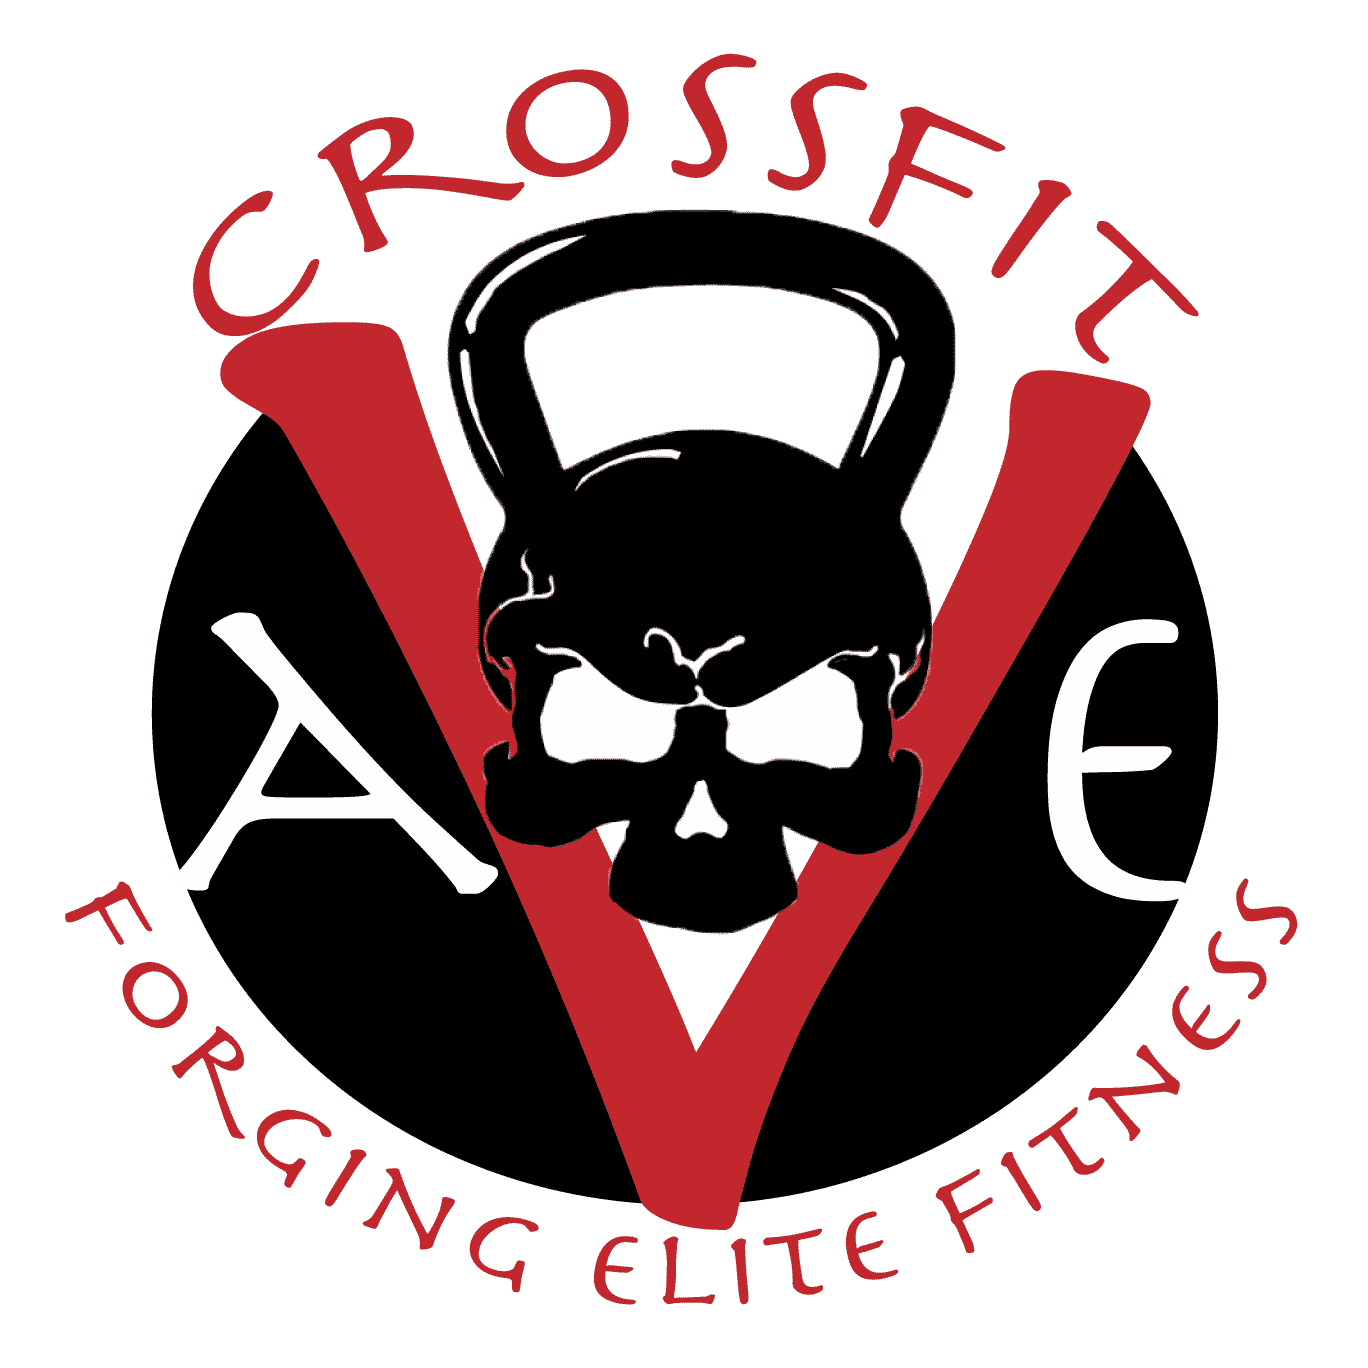 Welcome to crossfit avenue. Gym clipart functional training